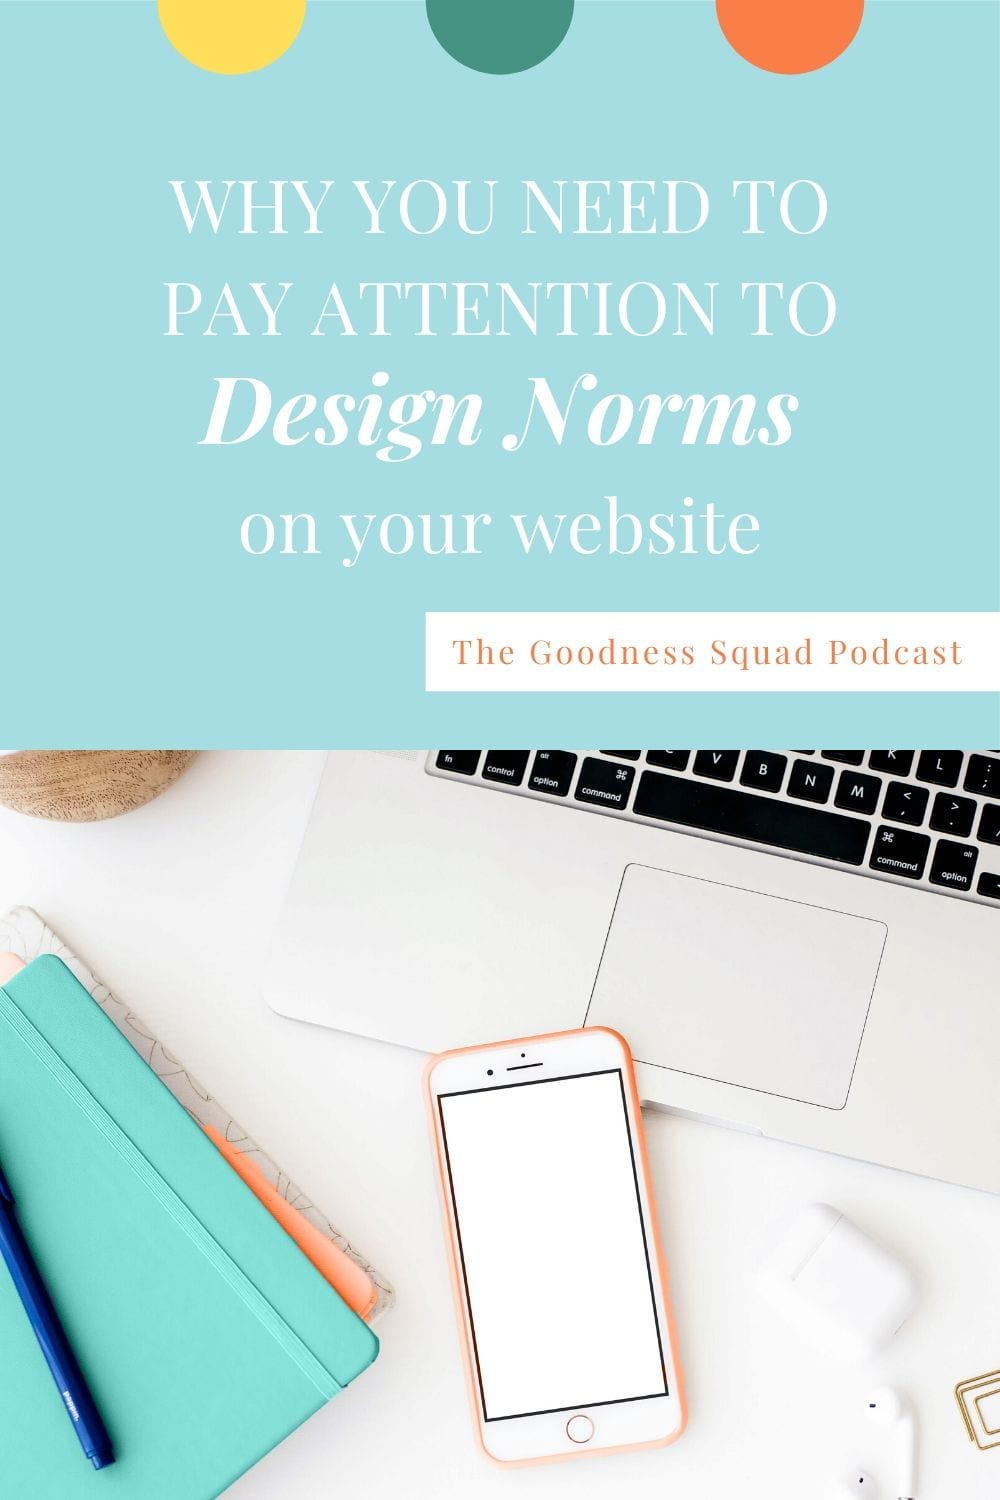 027_Why you should pay attention to design norms